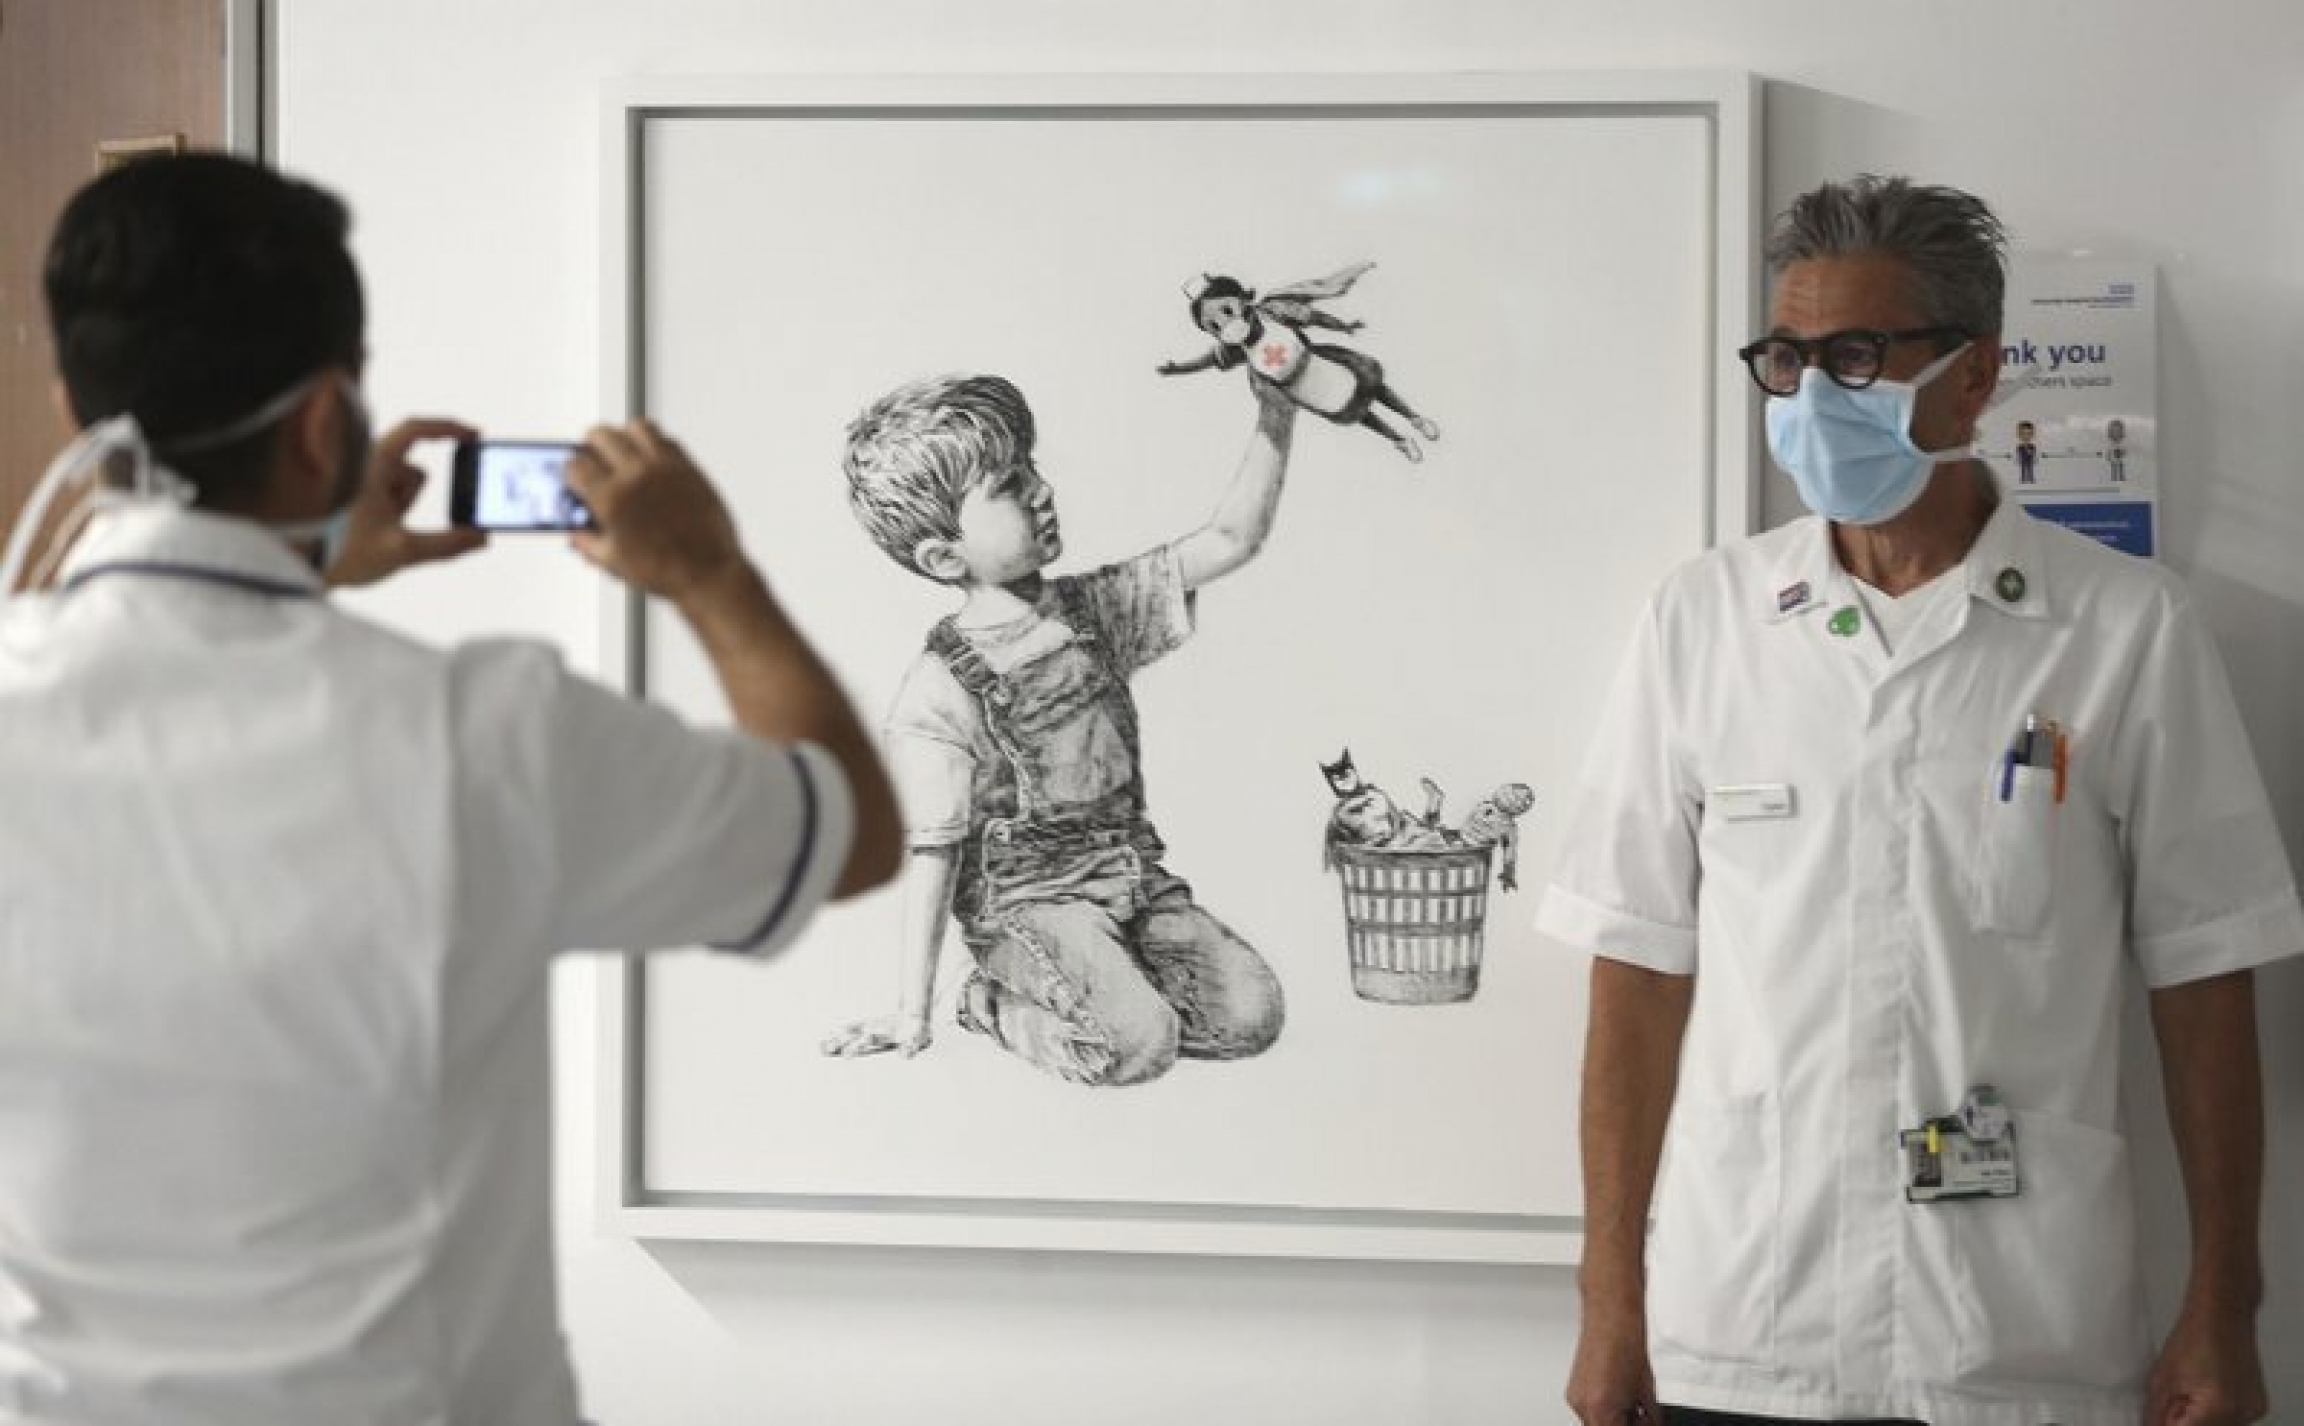 A member of a hospital staff is shown standing next to a Banksy artwork while getting their photograph taken.